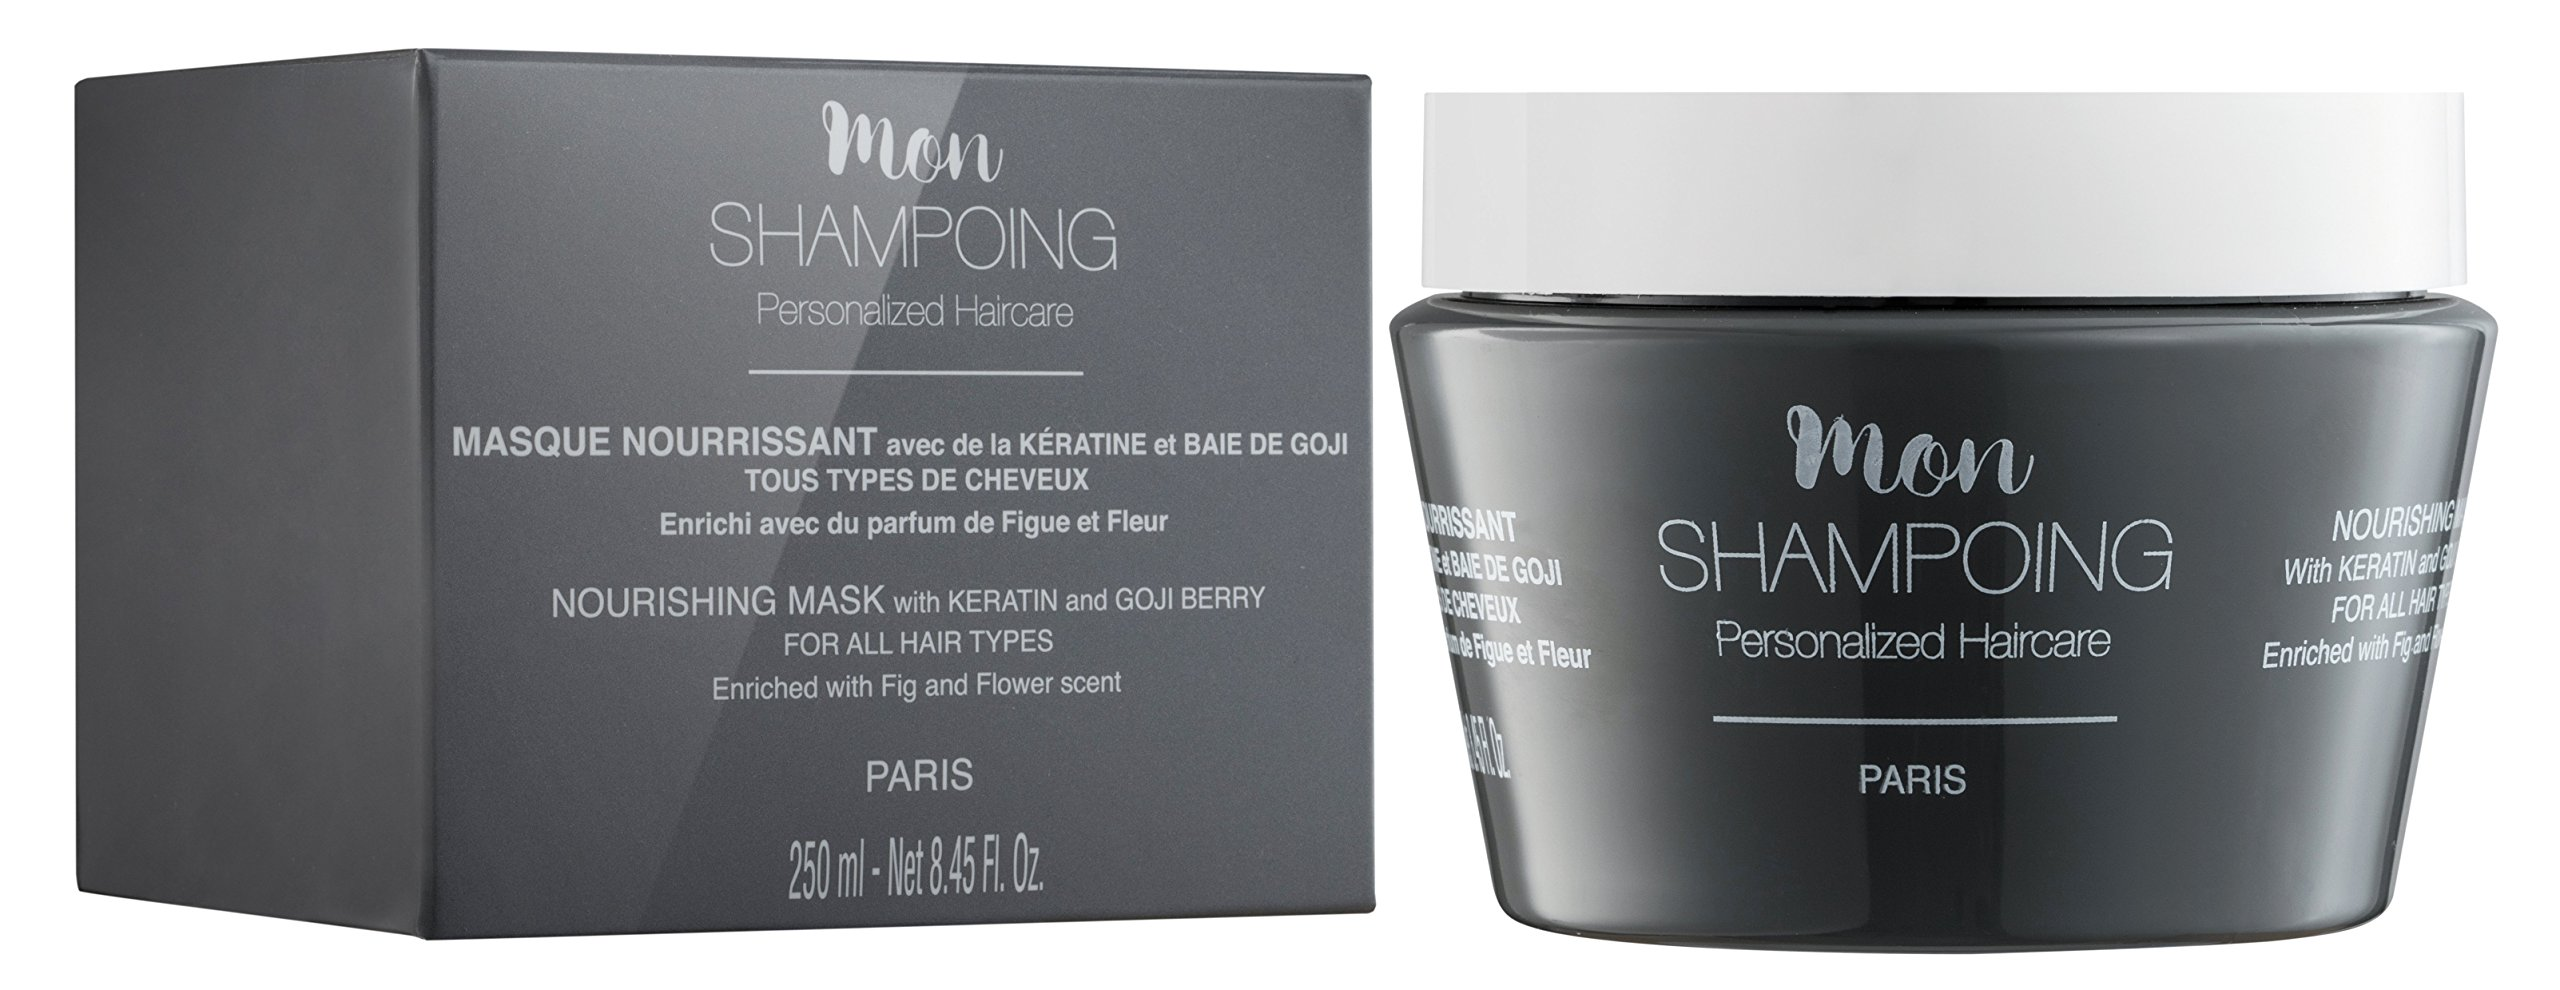 Mon Shampoing nourishing MASK with KERATIN and GOJI BERRY – ALL HAIR TYPES – 250 ml by Mon Shampoing (Image #2)